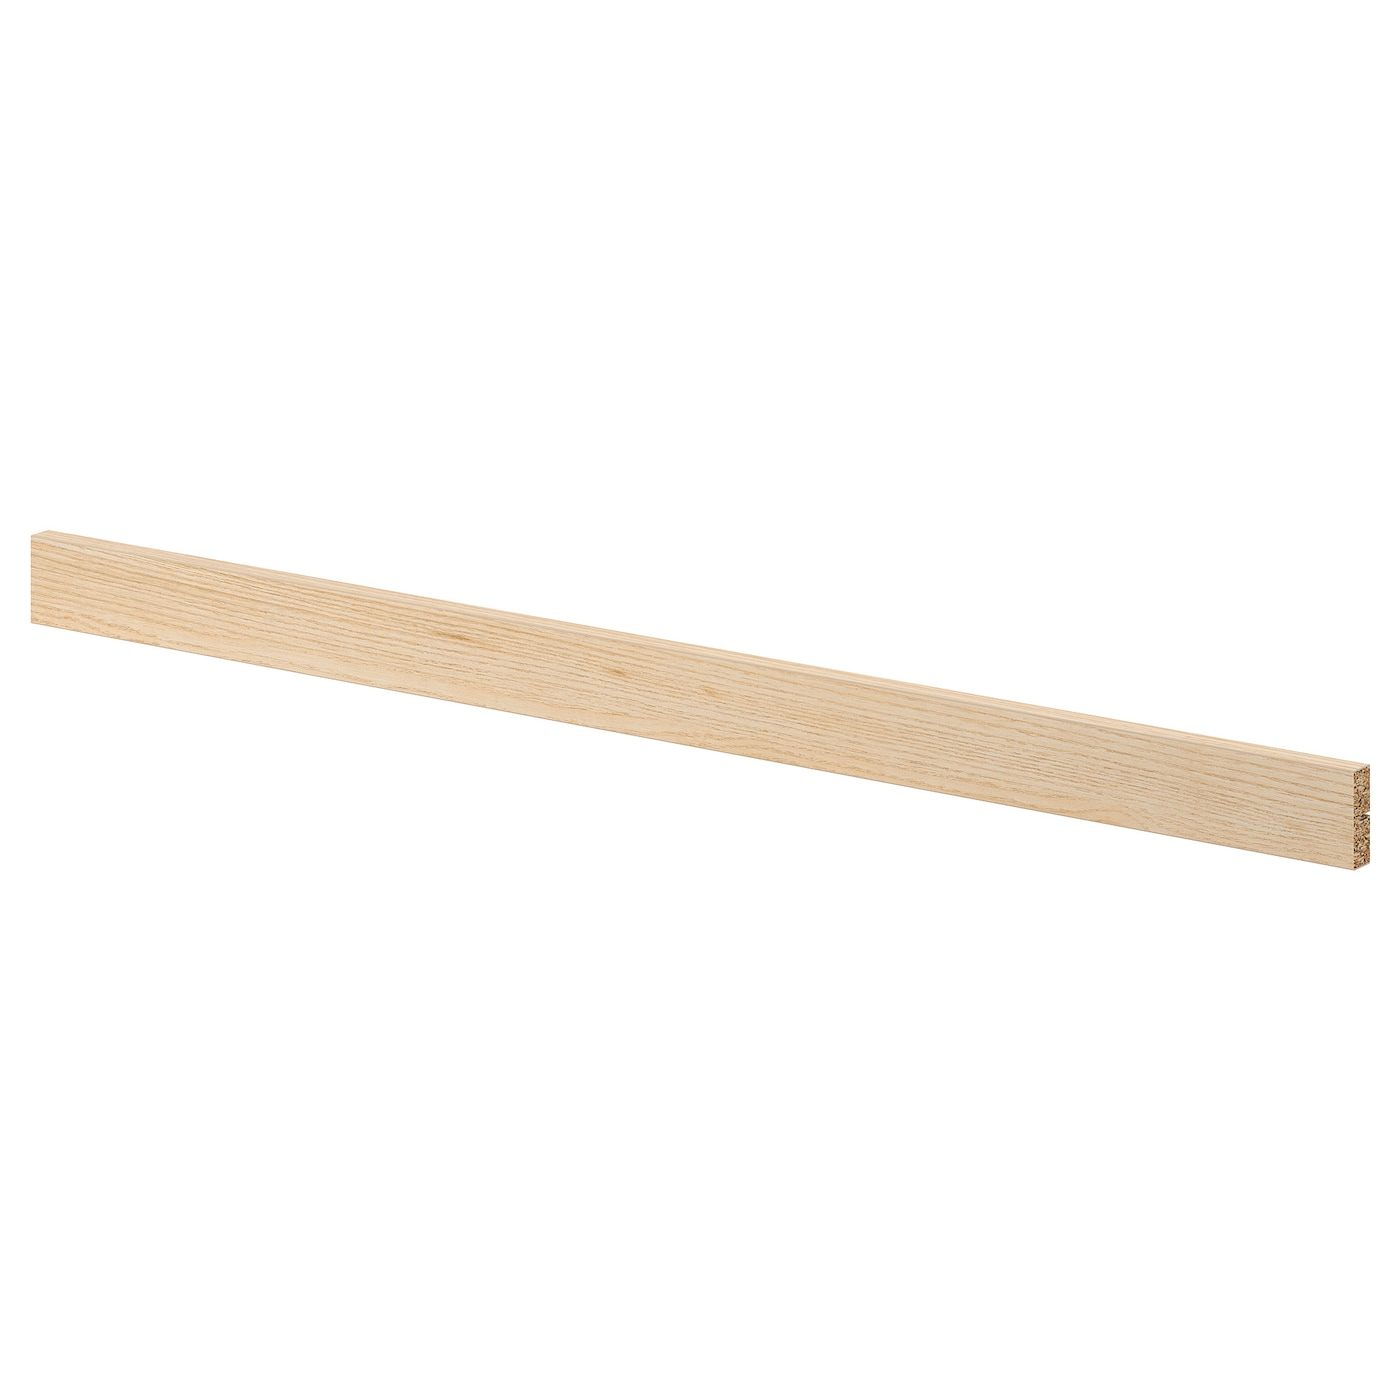 IKEA ASKERSUND rounded deco strip/moulding Can be cut to desired length.